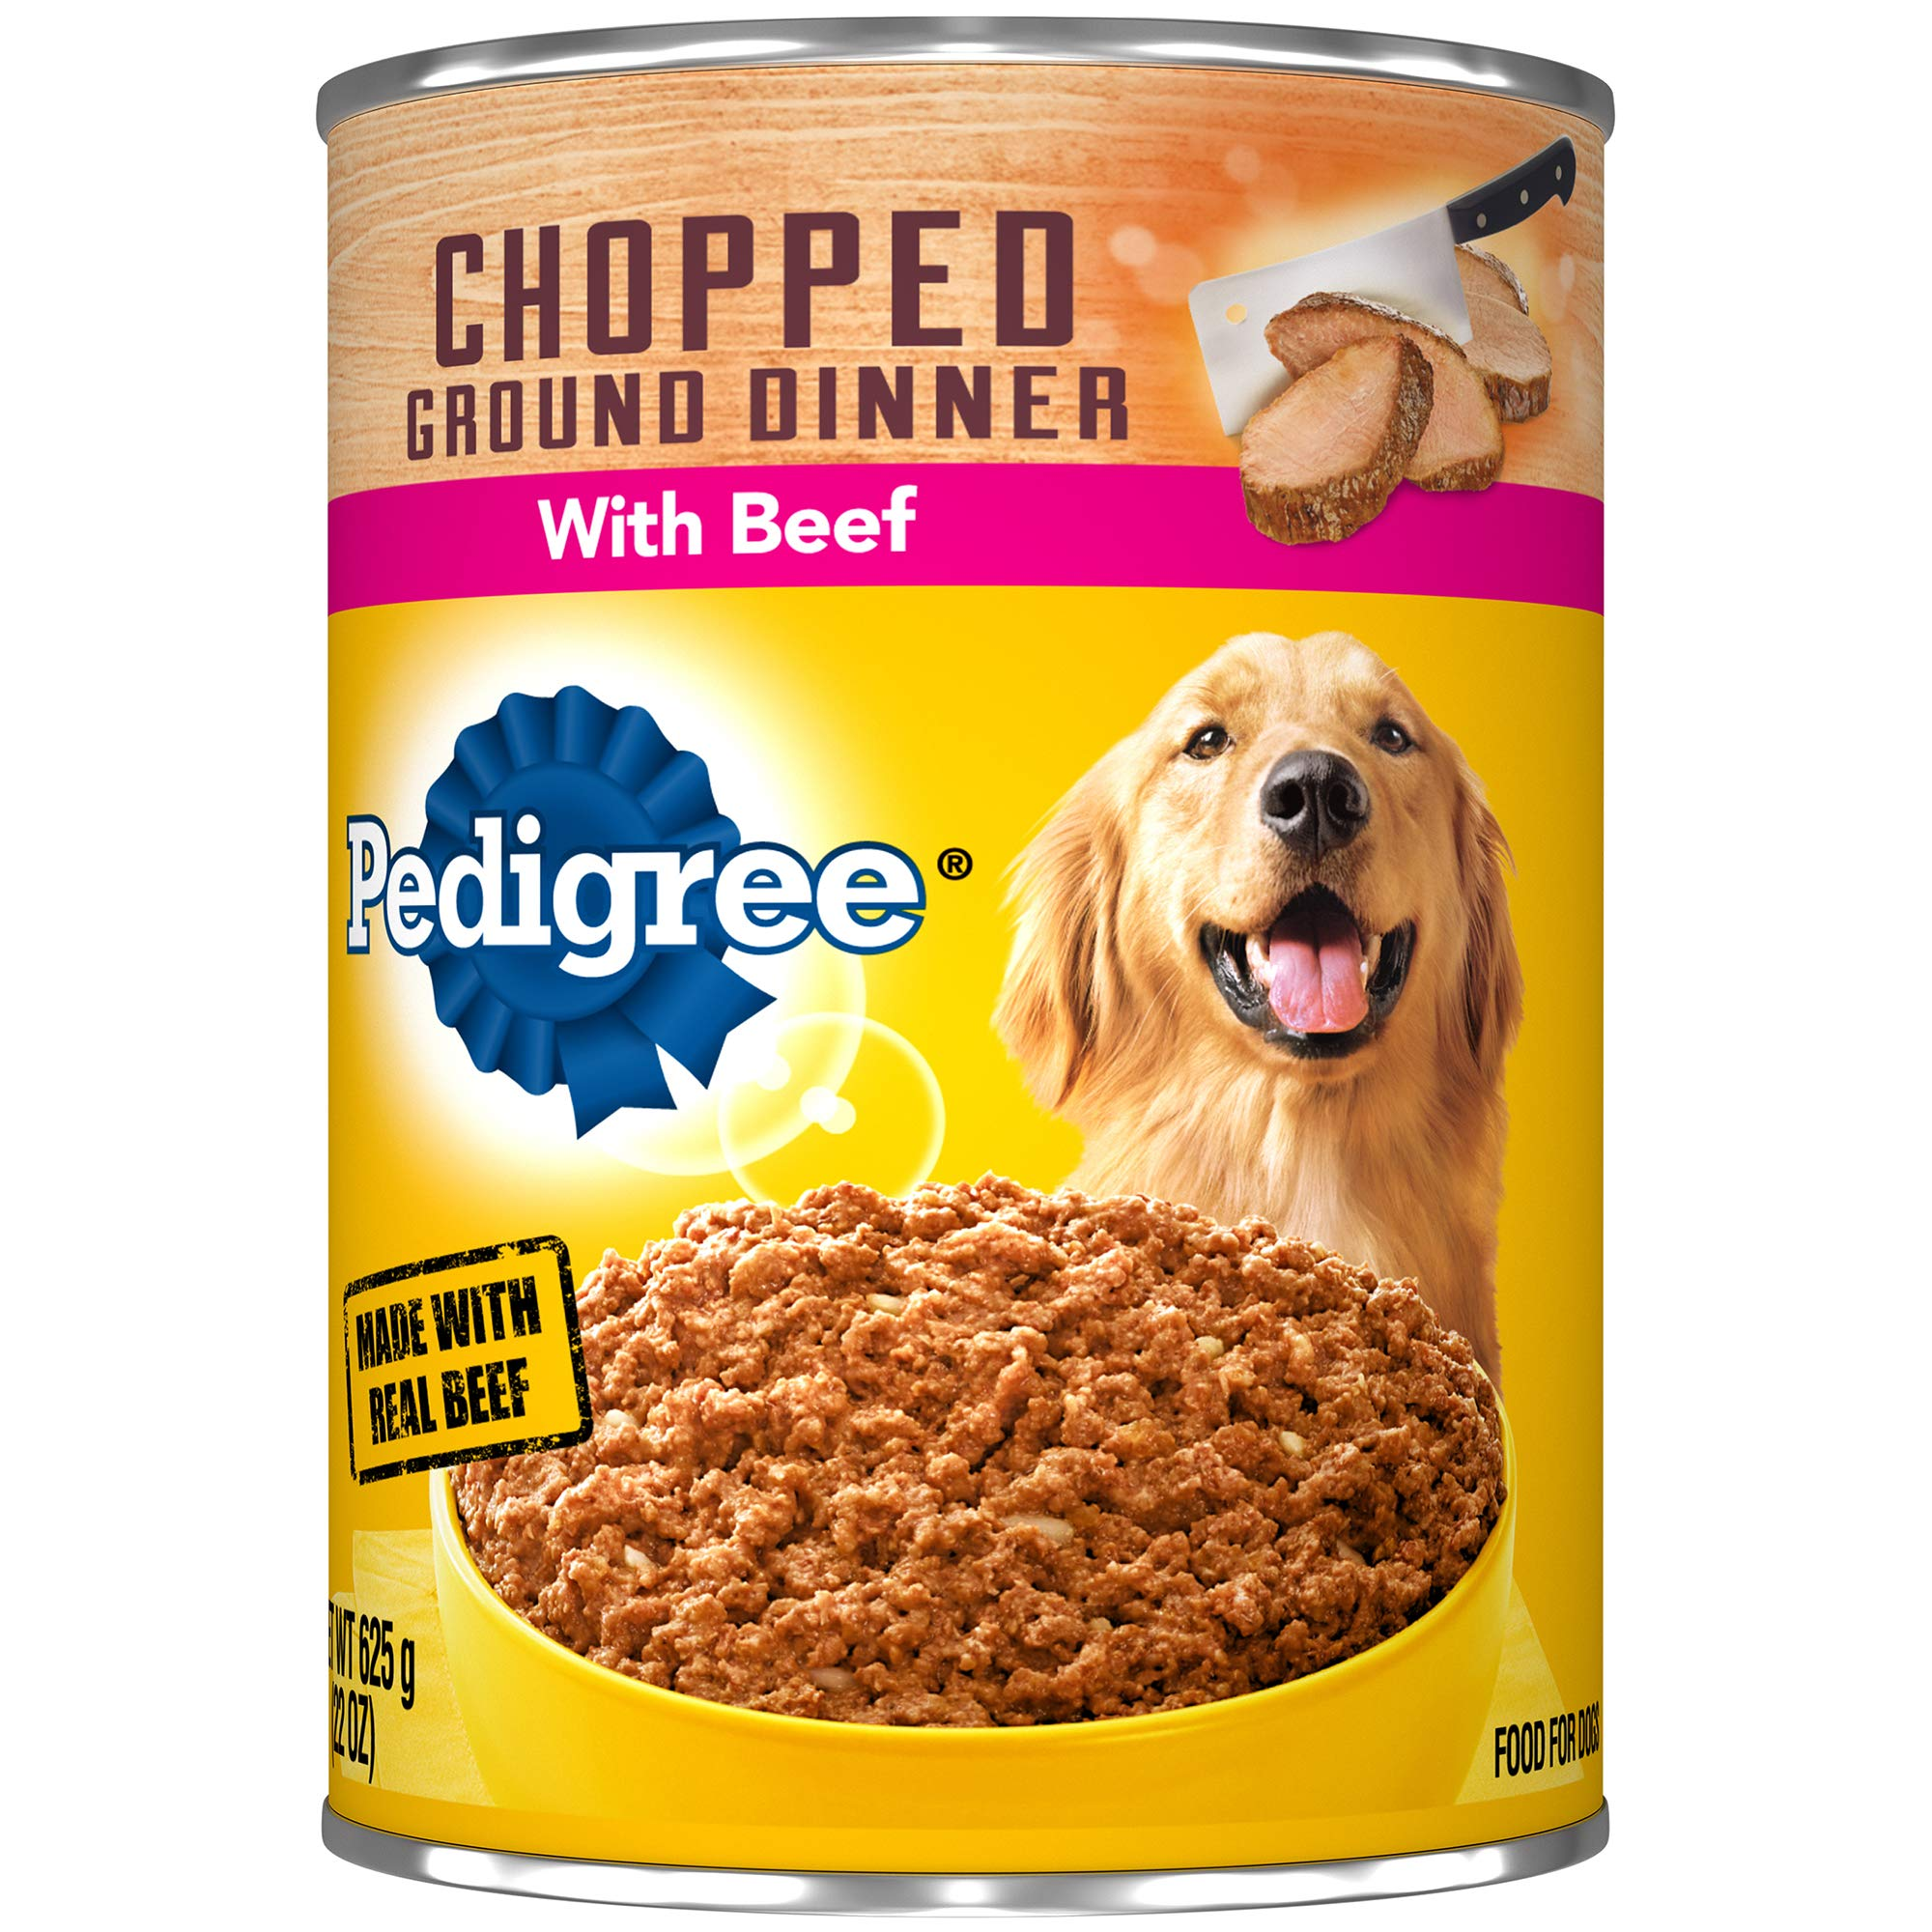 PEDIGREE Meaty Ground Dinner With Chopped Beef Canned Dog Food, (pack of 12) 22 ounce cans